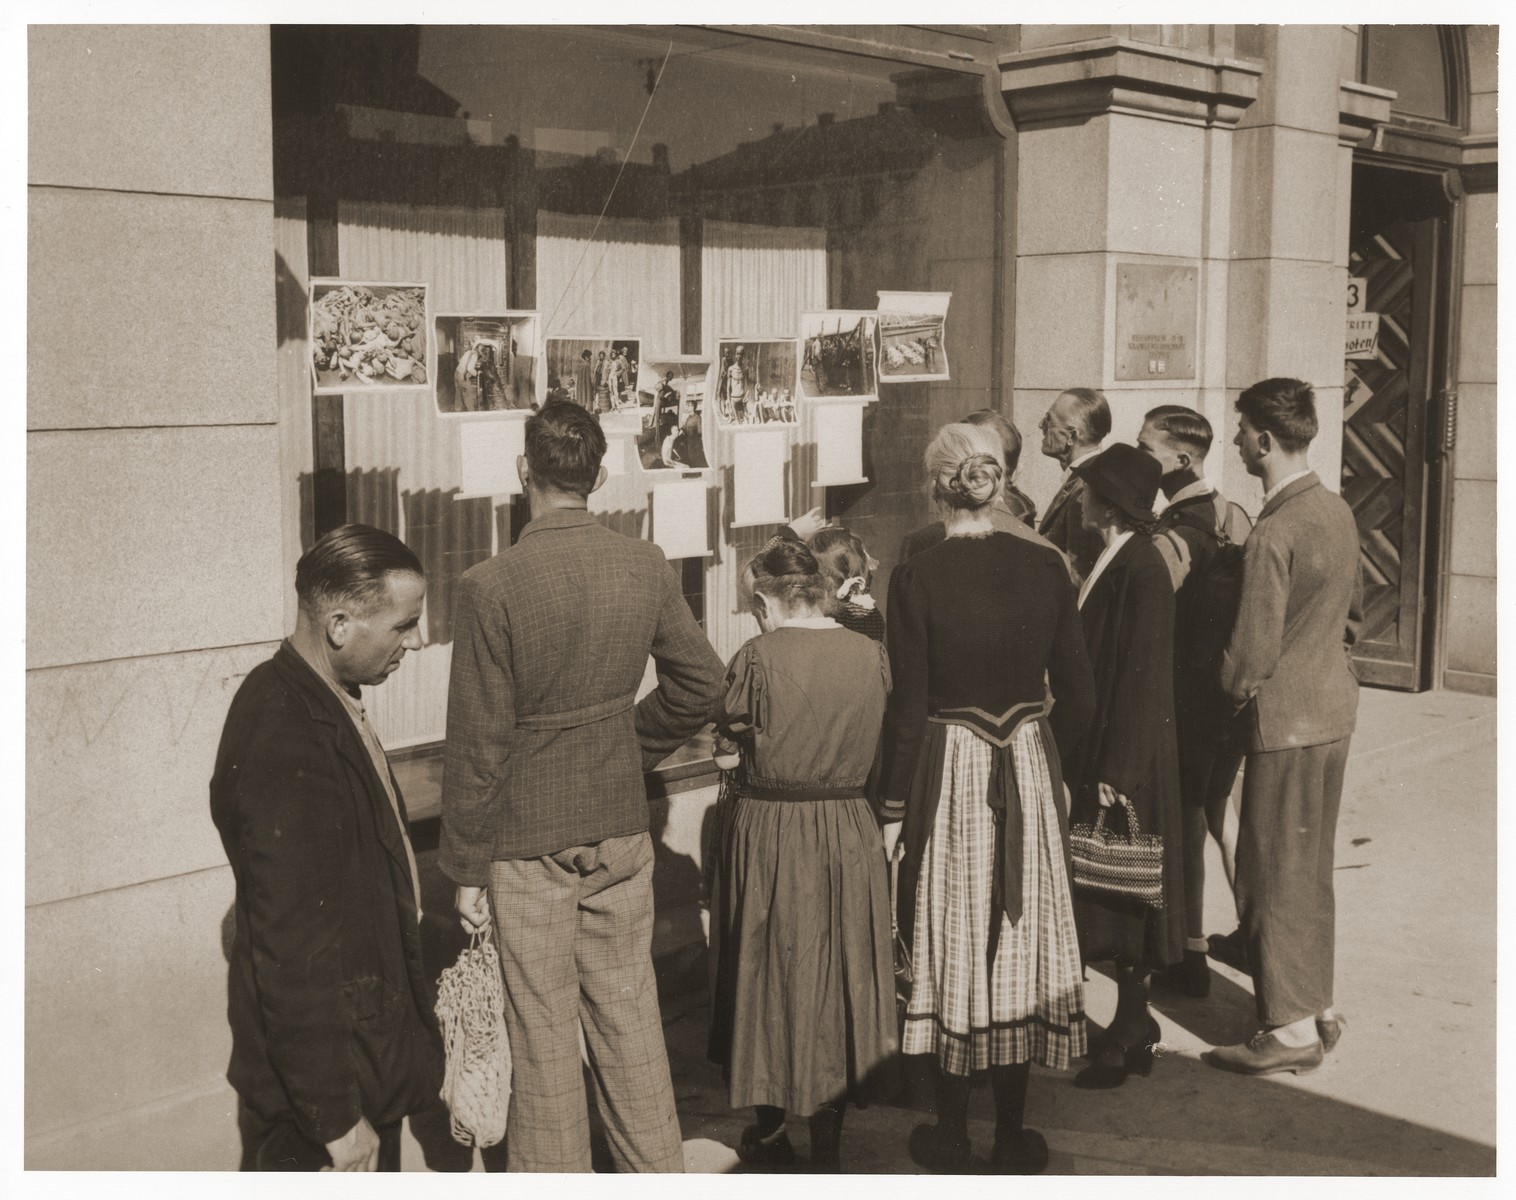 Austrian civilians view a display of photographs mounted in the window of a building in Linz showing Nazi atrocities in various concentration camps.   The photographs were supplied by the Information Service Branch of the Psychological Warfare Division, Supreme Headquarters Allied Expeditionary Force.  The displays were shown in all American held districts of Austria.